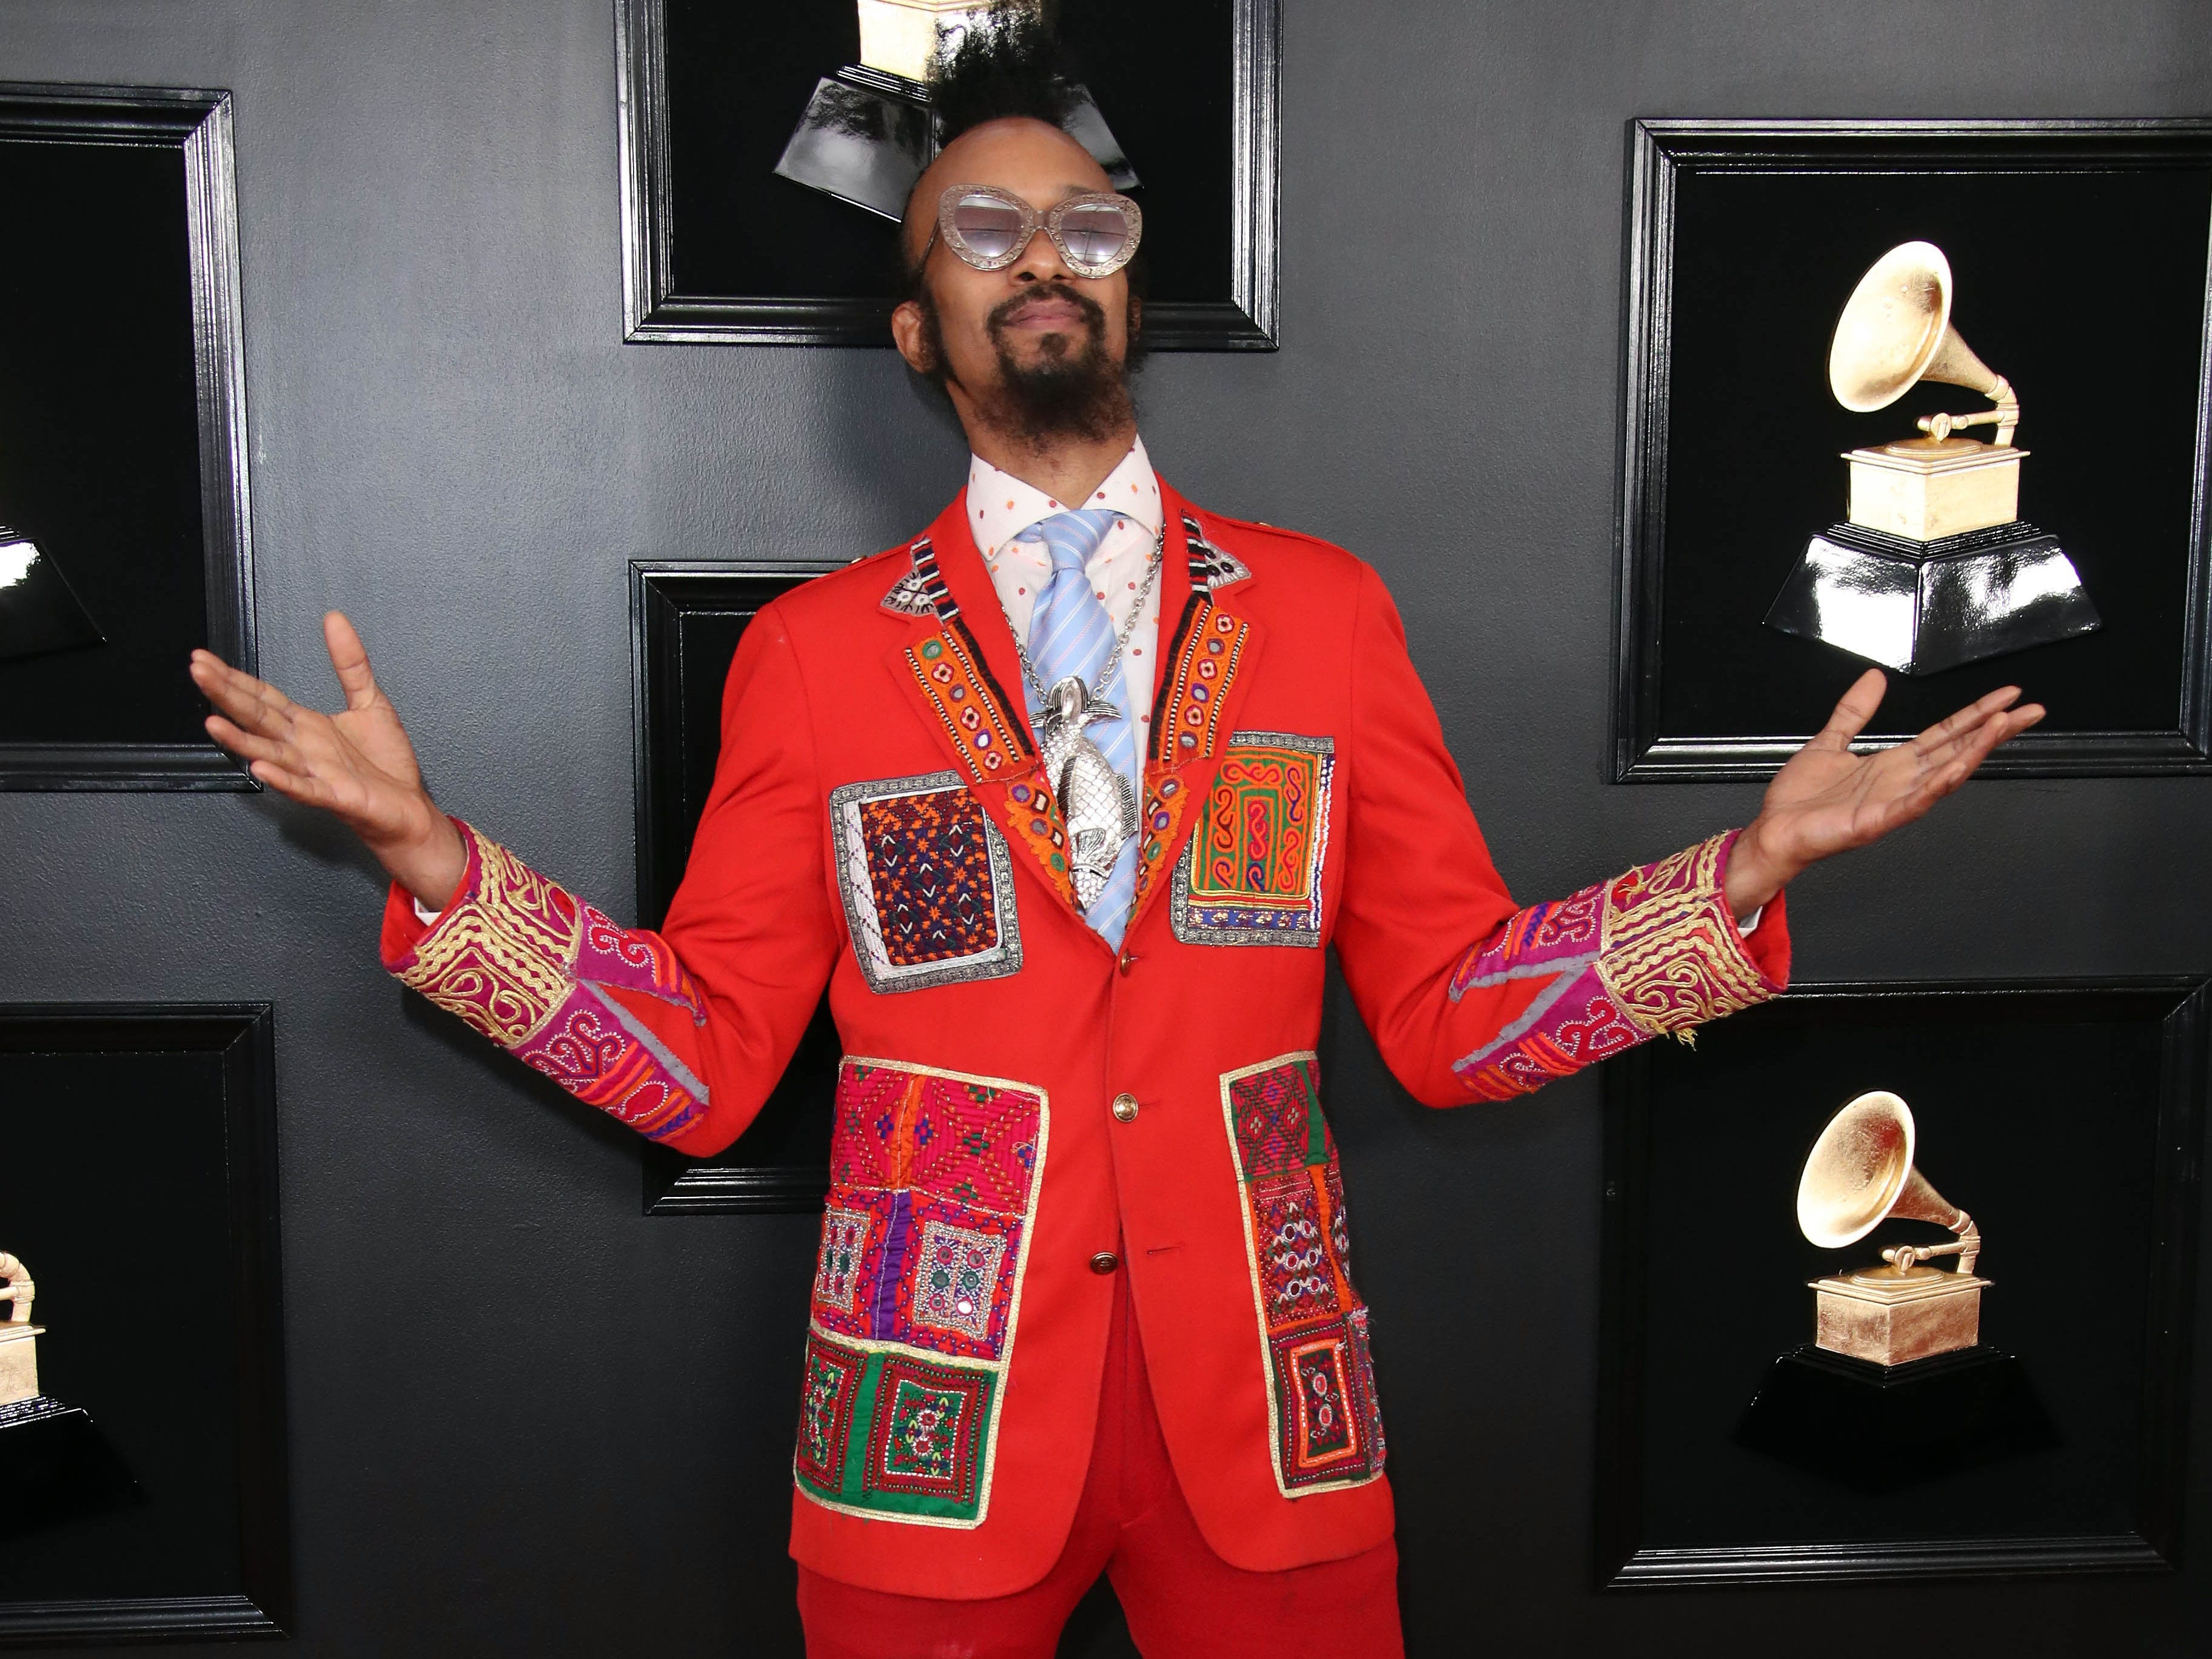 Fantastic Negrito attends the 61st Annual GRAMMY Awards on Feb. 10, 2019 at STAPLES Center in Los Angeles, Calif.